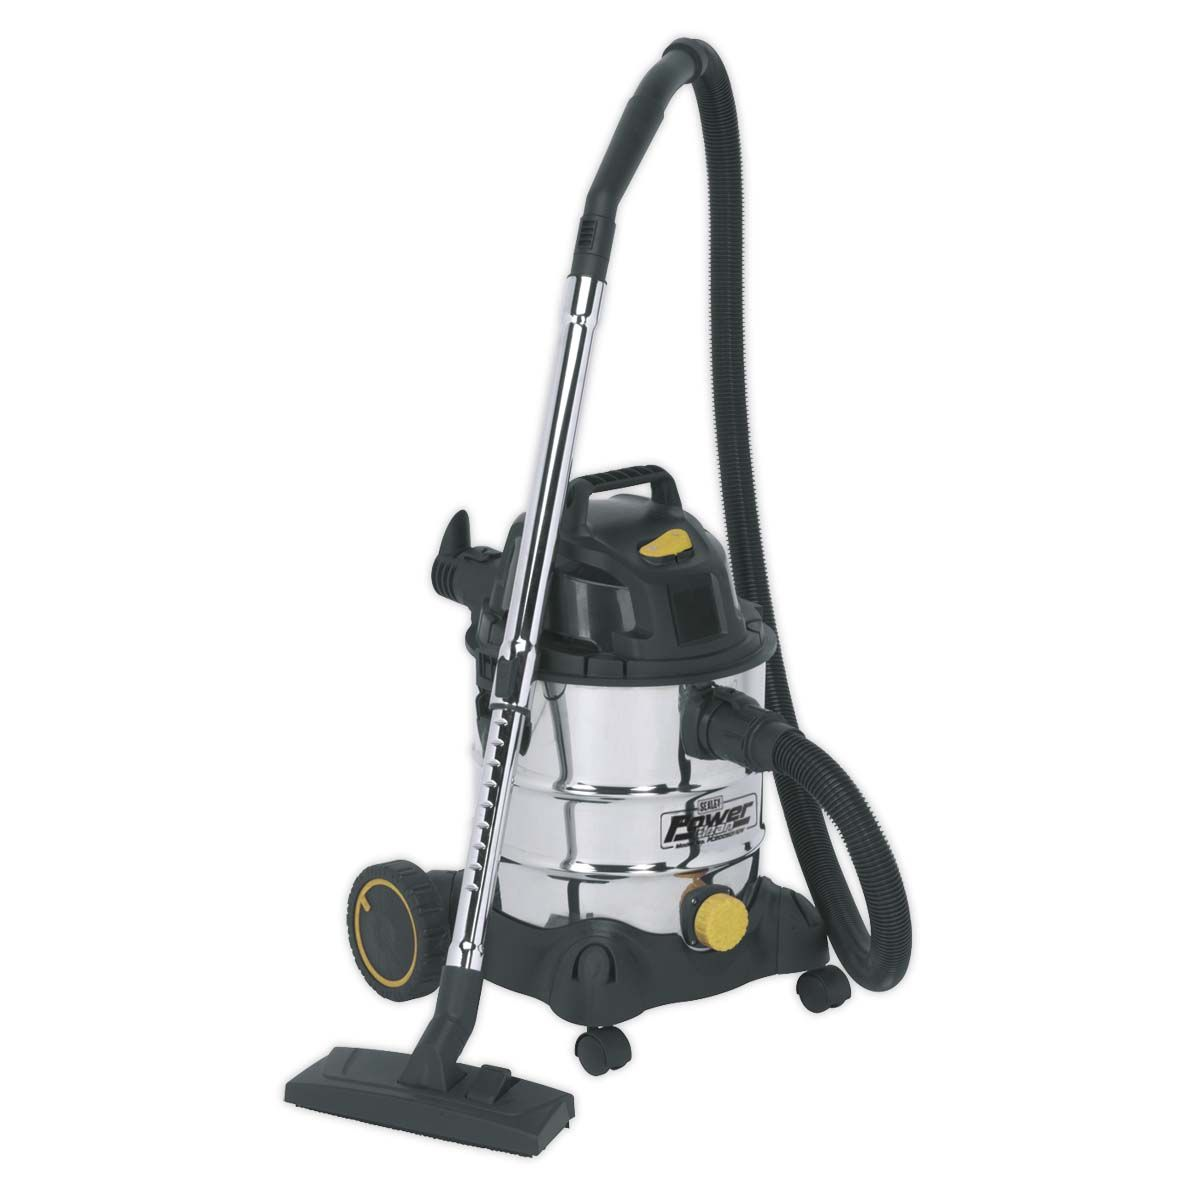 Sealey Vacuum Cleaner Industrial Wet & Dry 20L 1250W/110V Stainless Drum